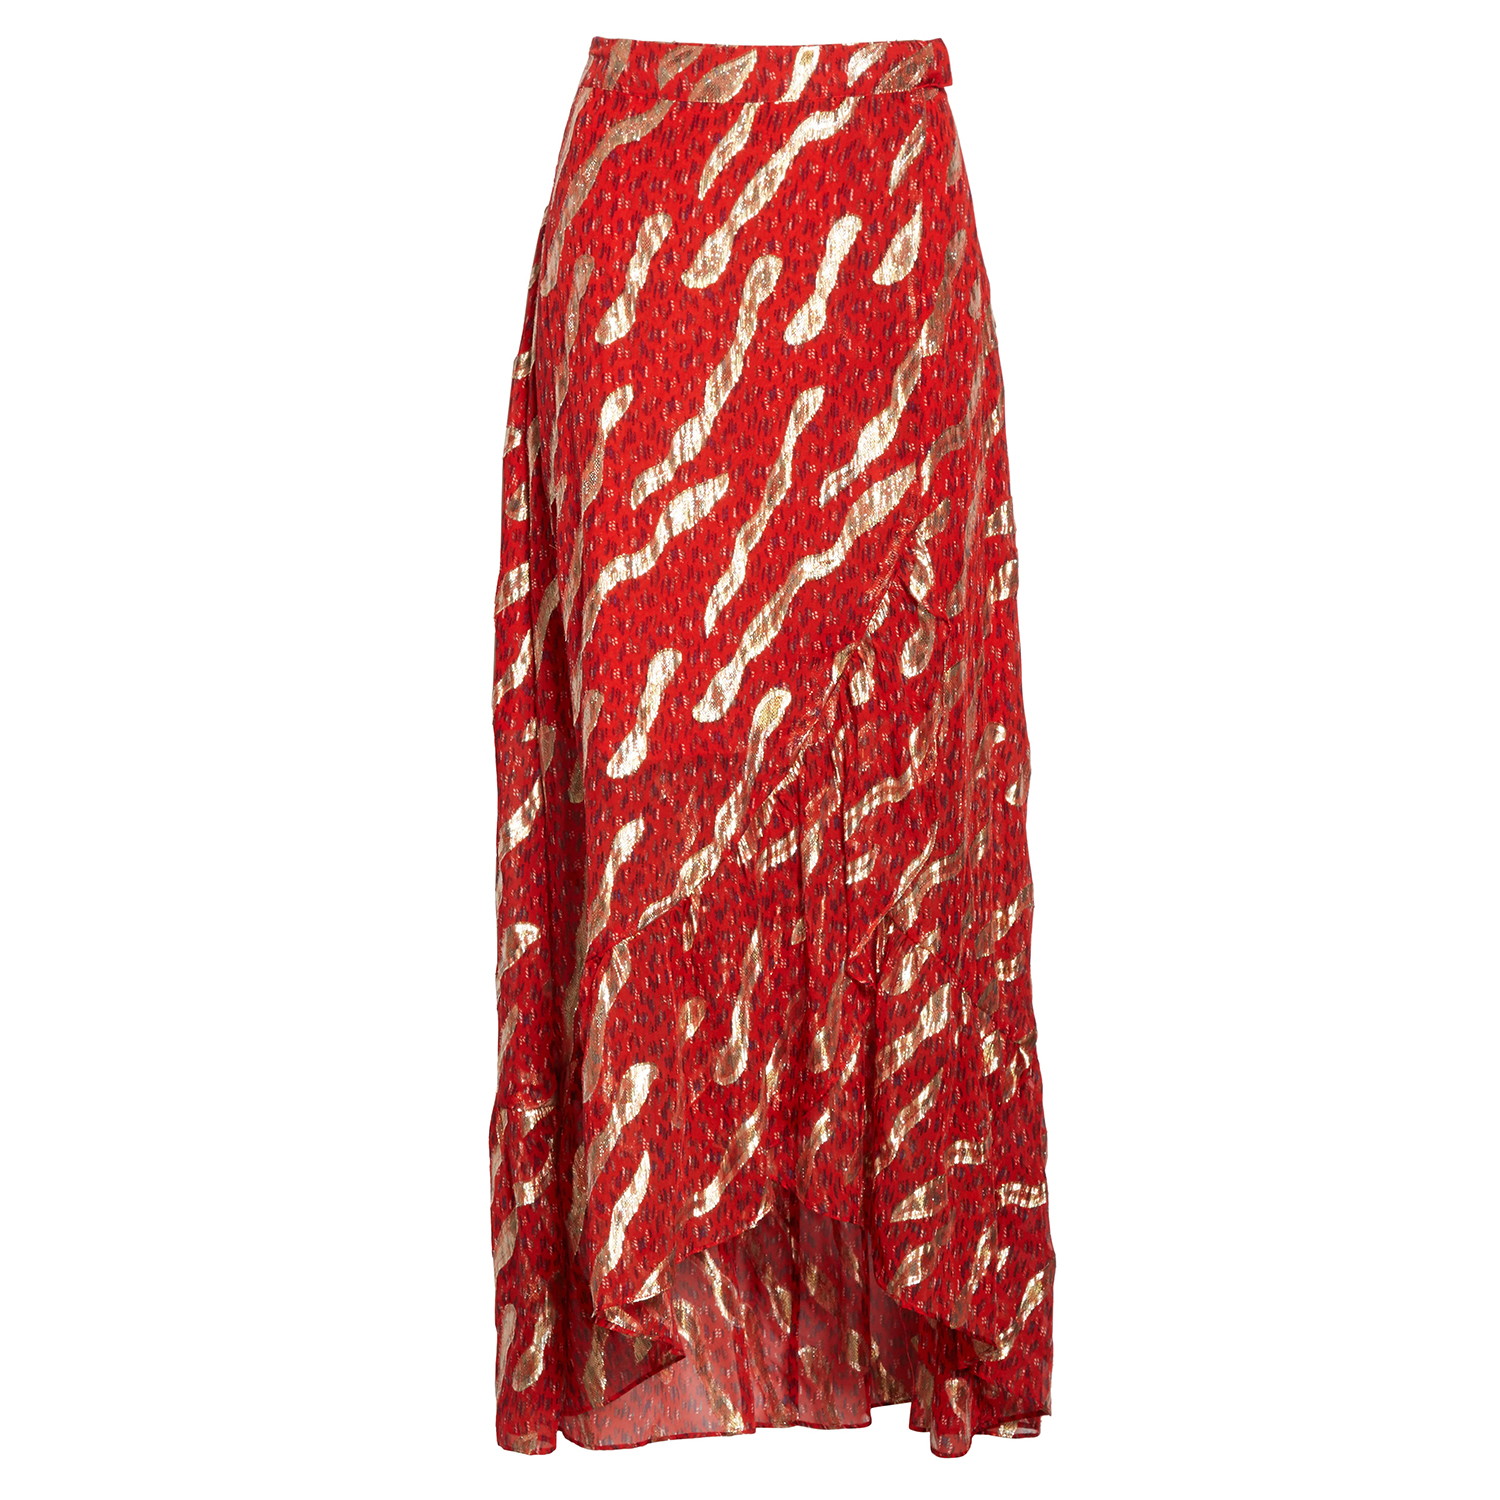 ba&sh Hada Metallic Print Silk Skirt